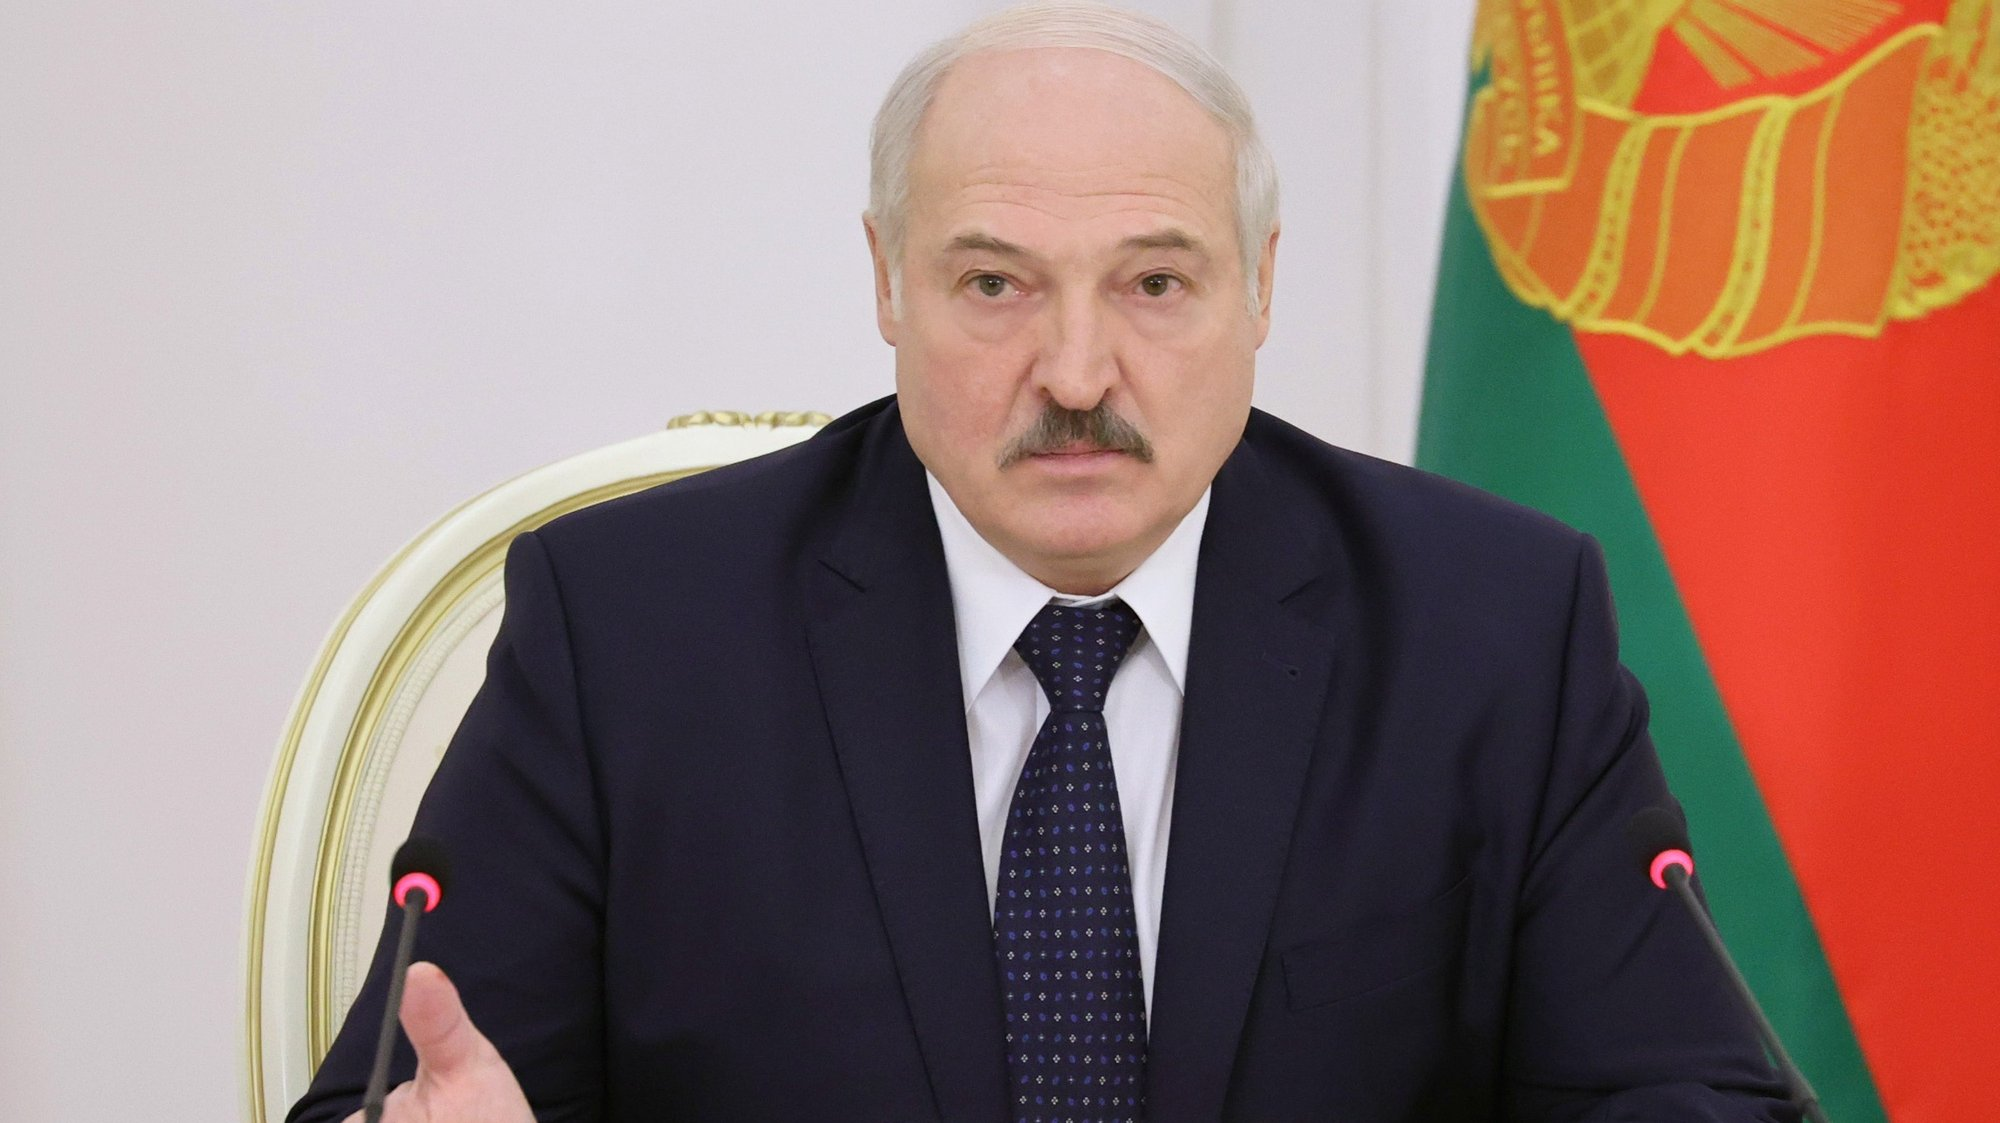 epa09318612 (FILE) Belarusian President Alexander Lukashenko talks during a meeting for economy assessment for 2020 and a draft forecast documents for 2021 in Minsk, Belarus, 07 December 2020 (reissued 02 July 2021). President Lukashenko on 02 July 2021, during a solemn meeting marking the Independence day, has ordered to close the border with Ukraine to prevent the significant incursion of weapons from Ukraine to Belarus, according to Belarusian state news agency Belta.  EPA/MAXIM GUCHEK/ POOL MANDATORY CREDIT *** Local Caption *** 56548158